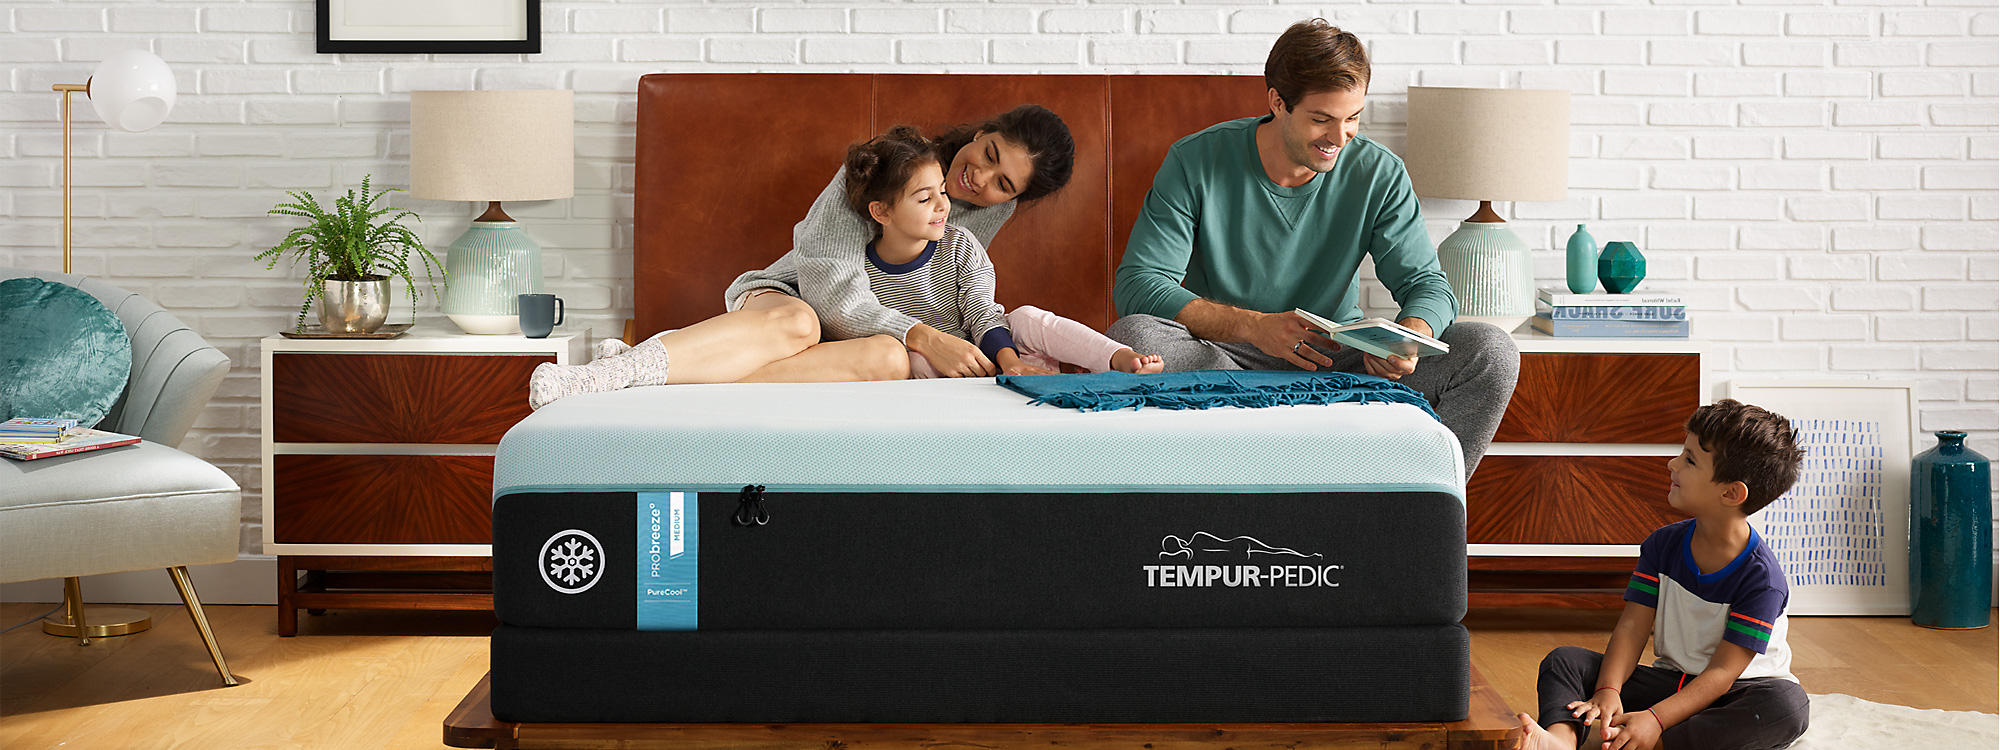 Remarkable Denver Mattress The Easiest Way To Get The Right Mattress Andrewgaddart Wooden Chair Designs For Living Room Andrewgaddartcom